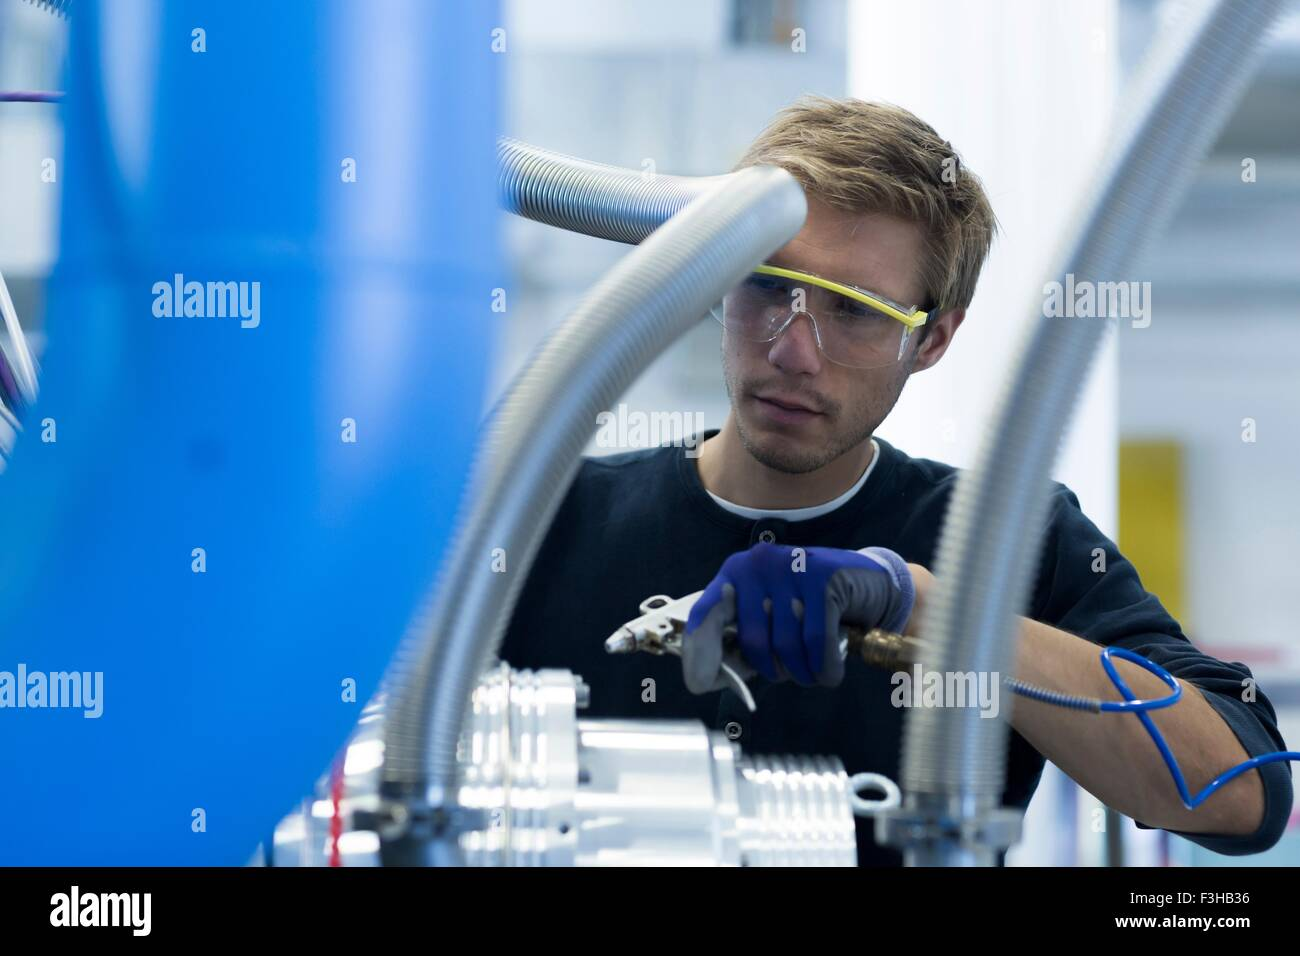 Factory technician maintaining network cables - Stock Image